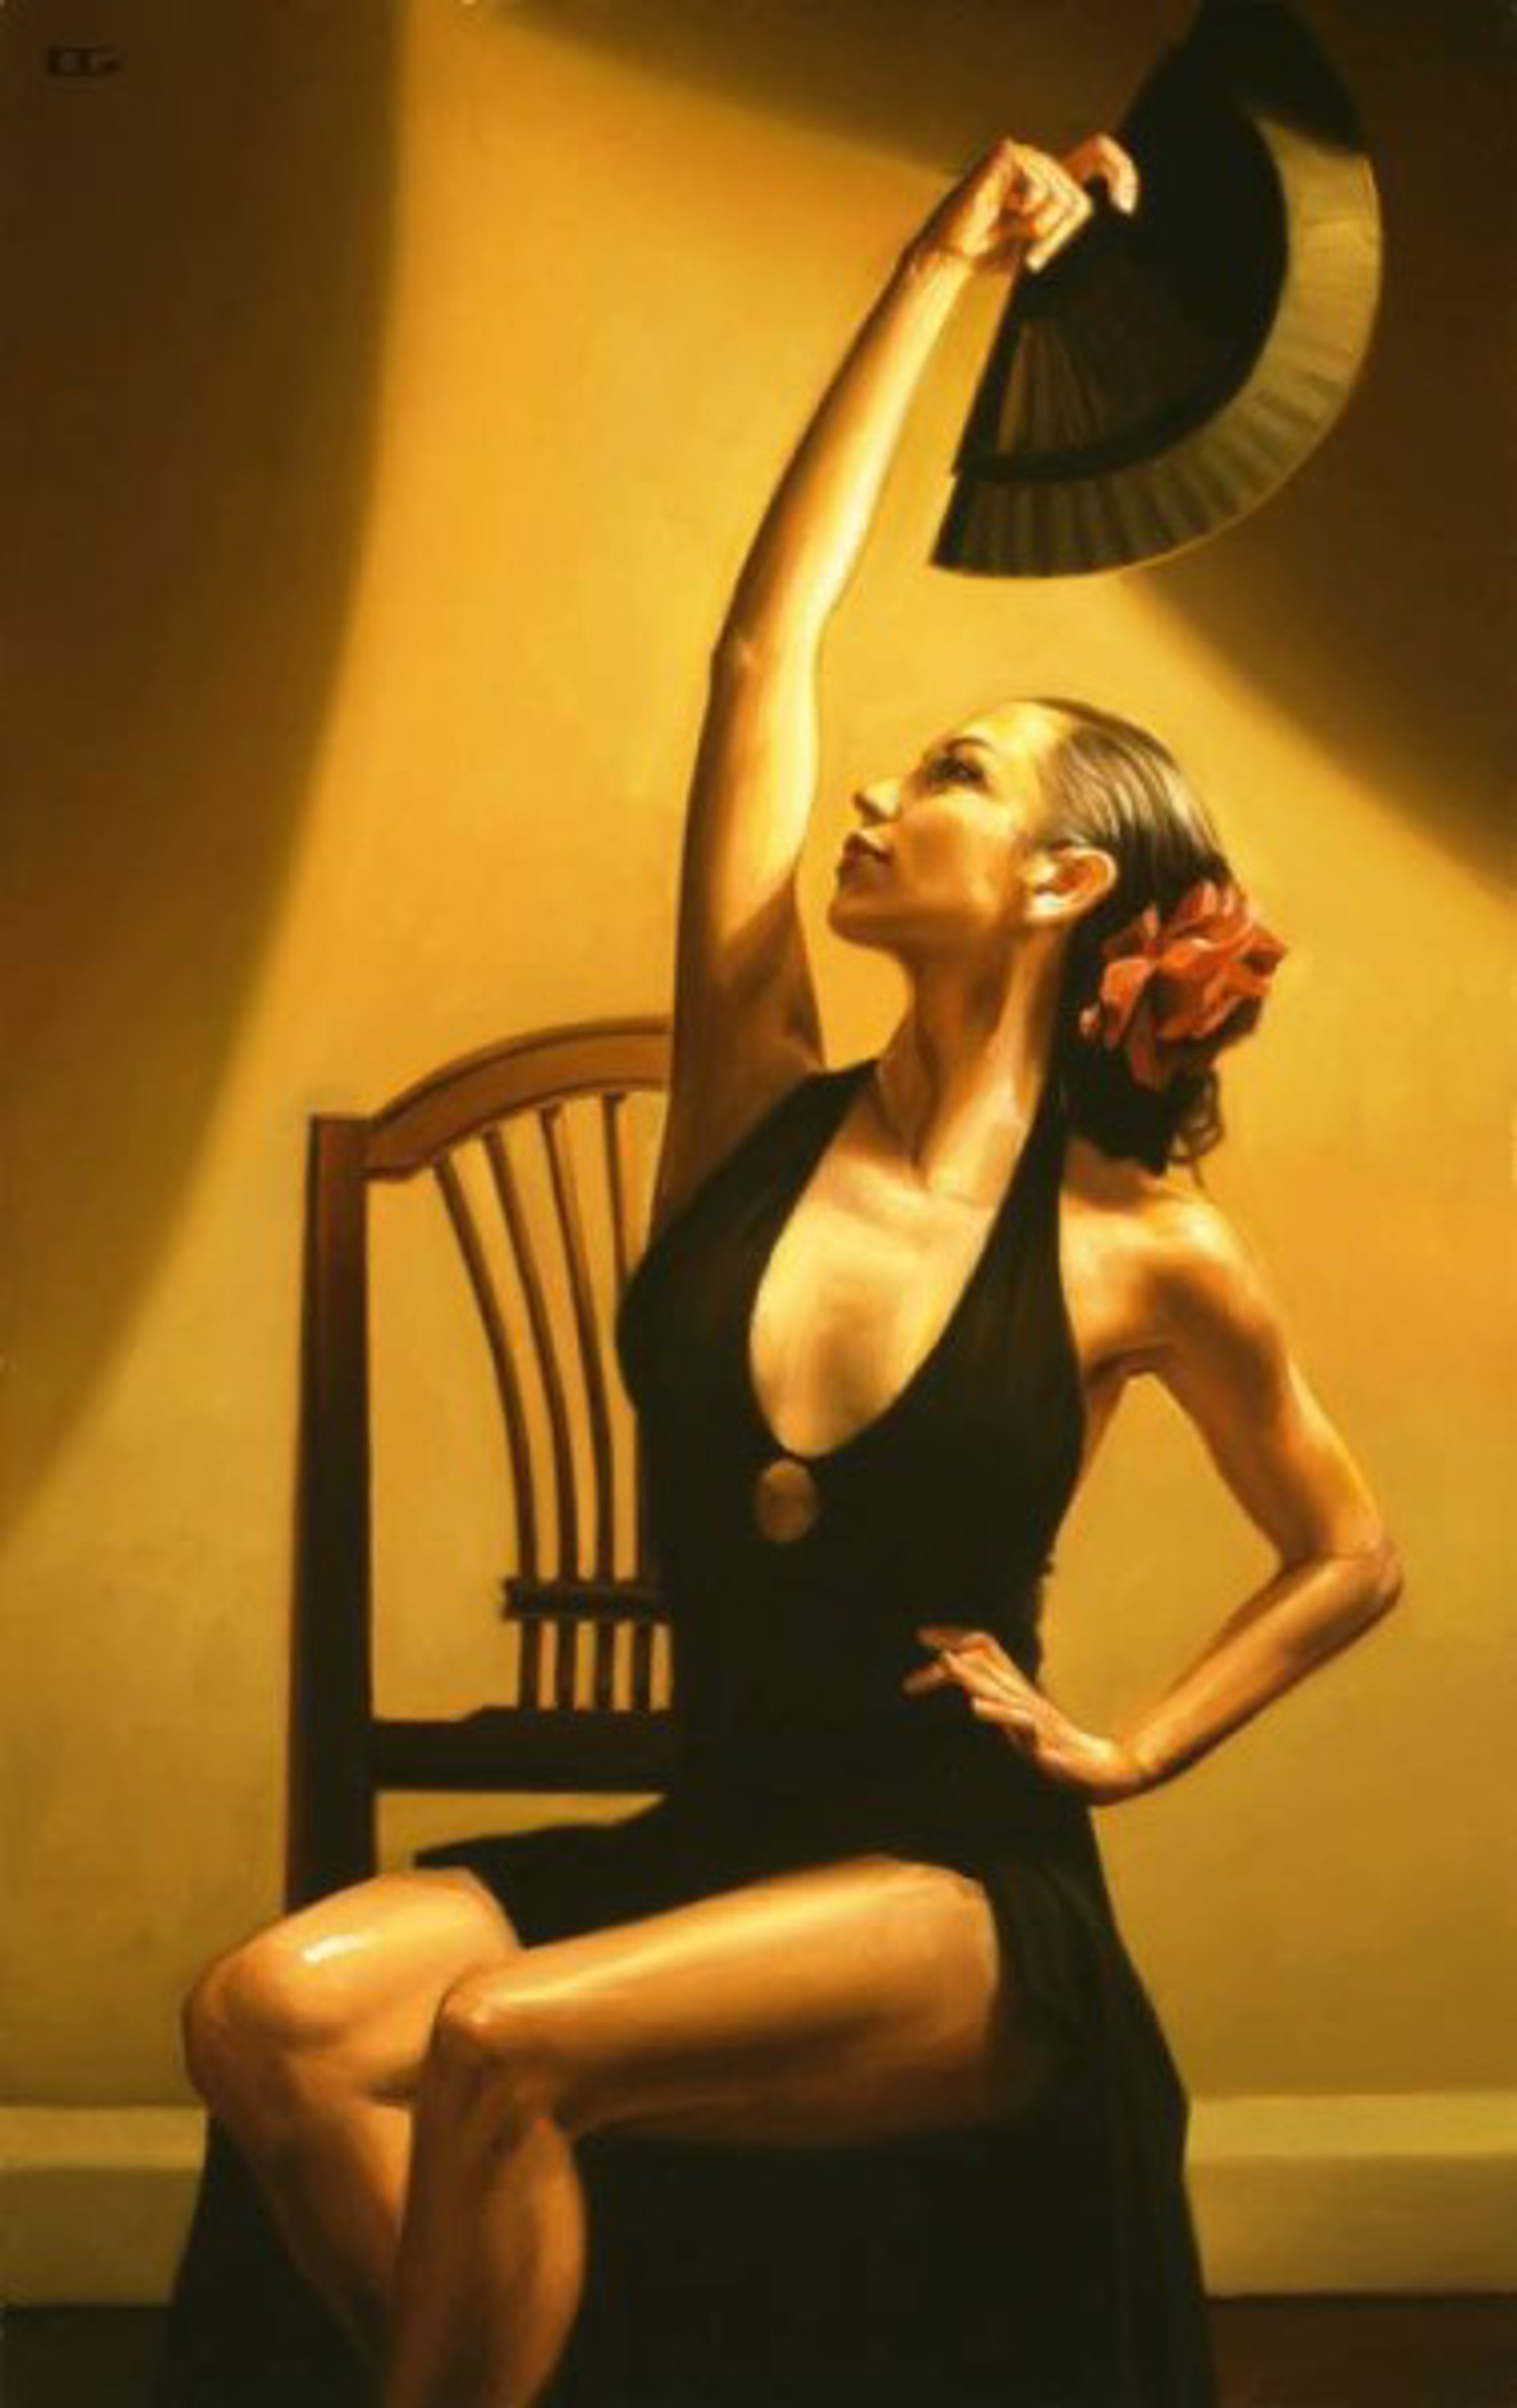 Inspired Curves (S/N) by Carrie Graber